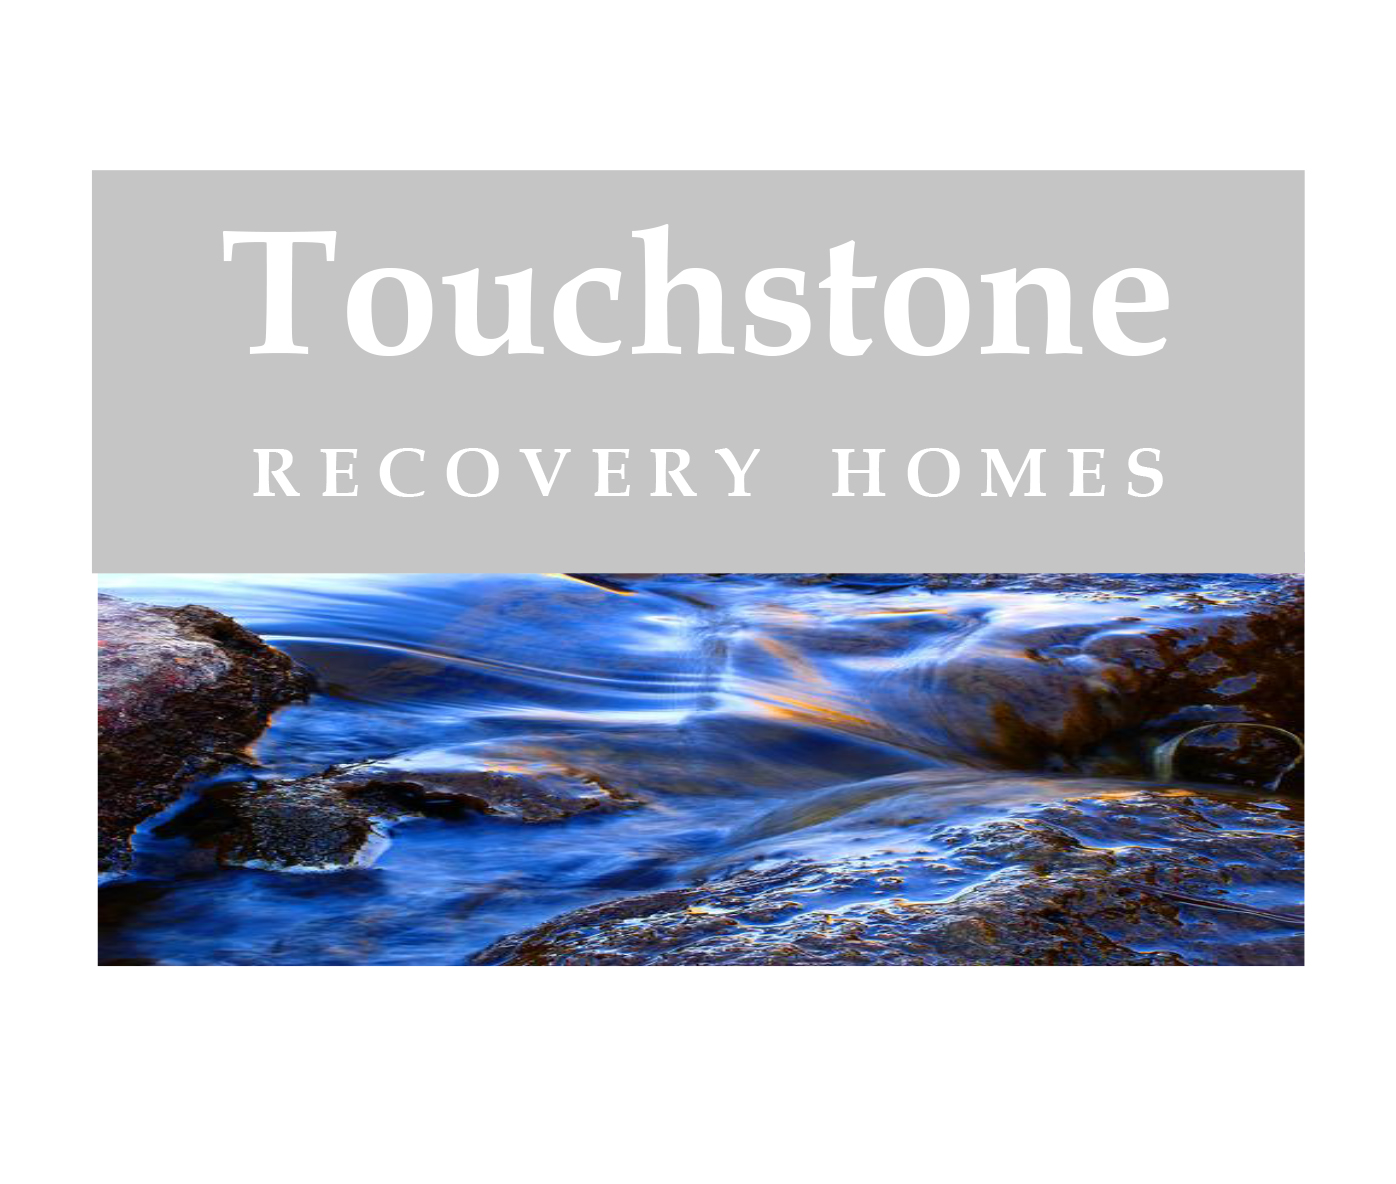 Touchstone Recovery Homes